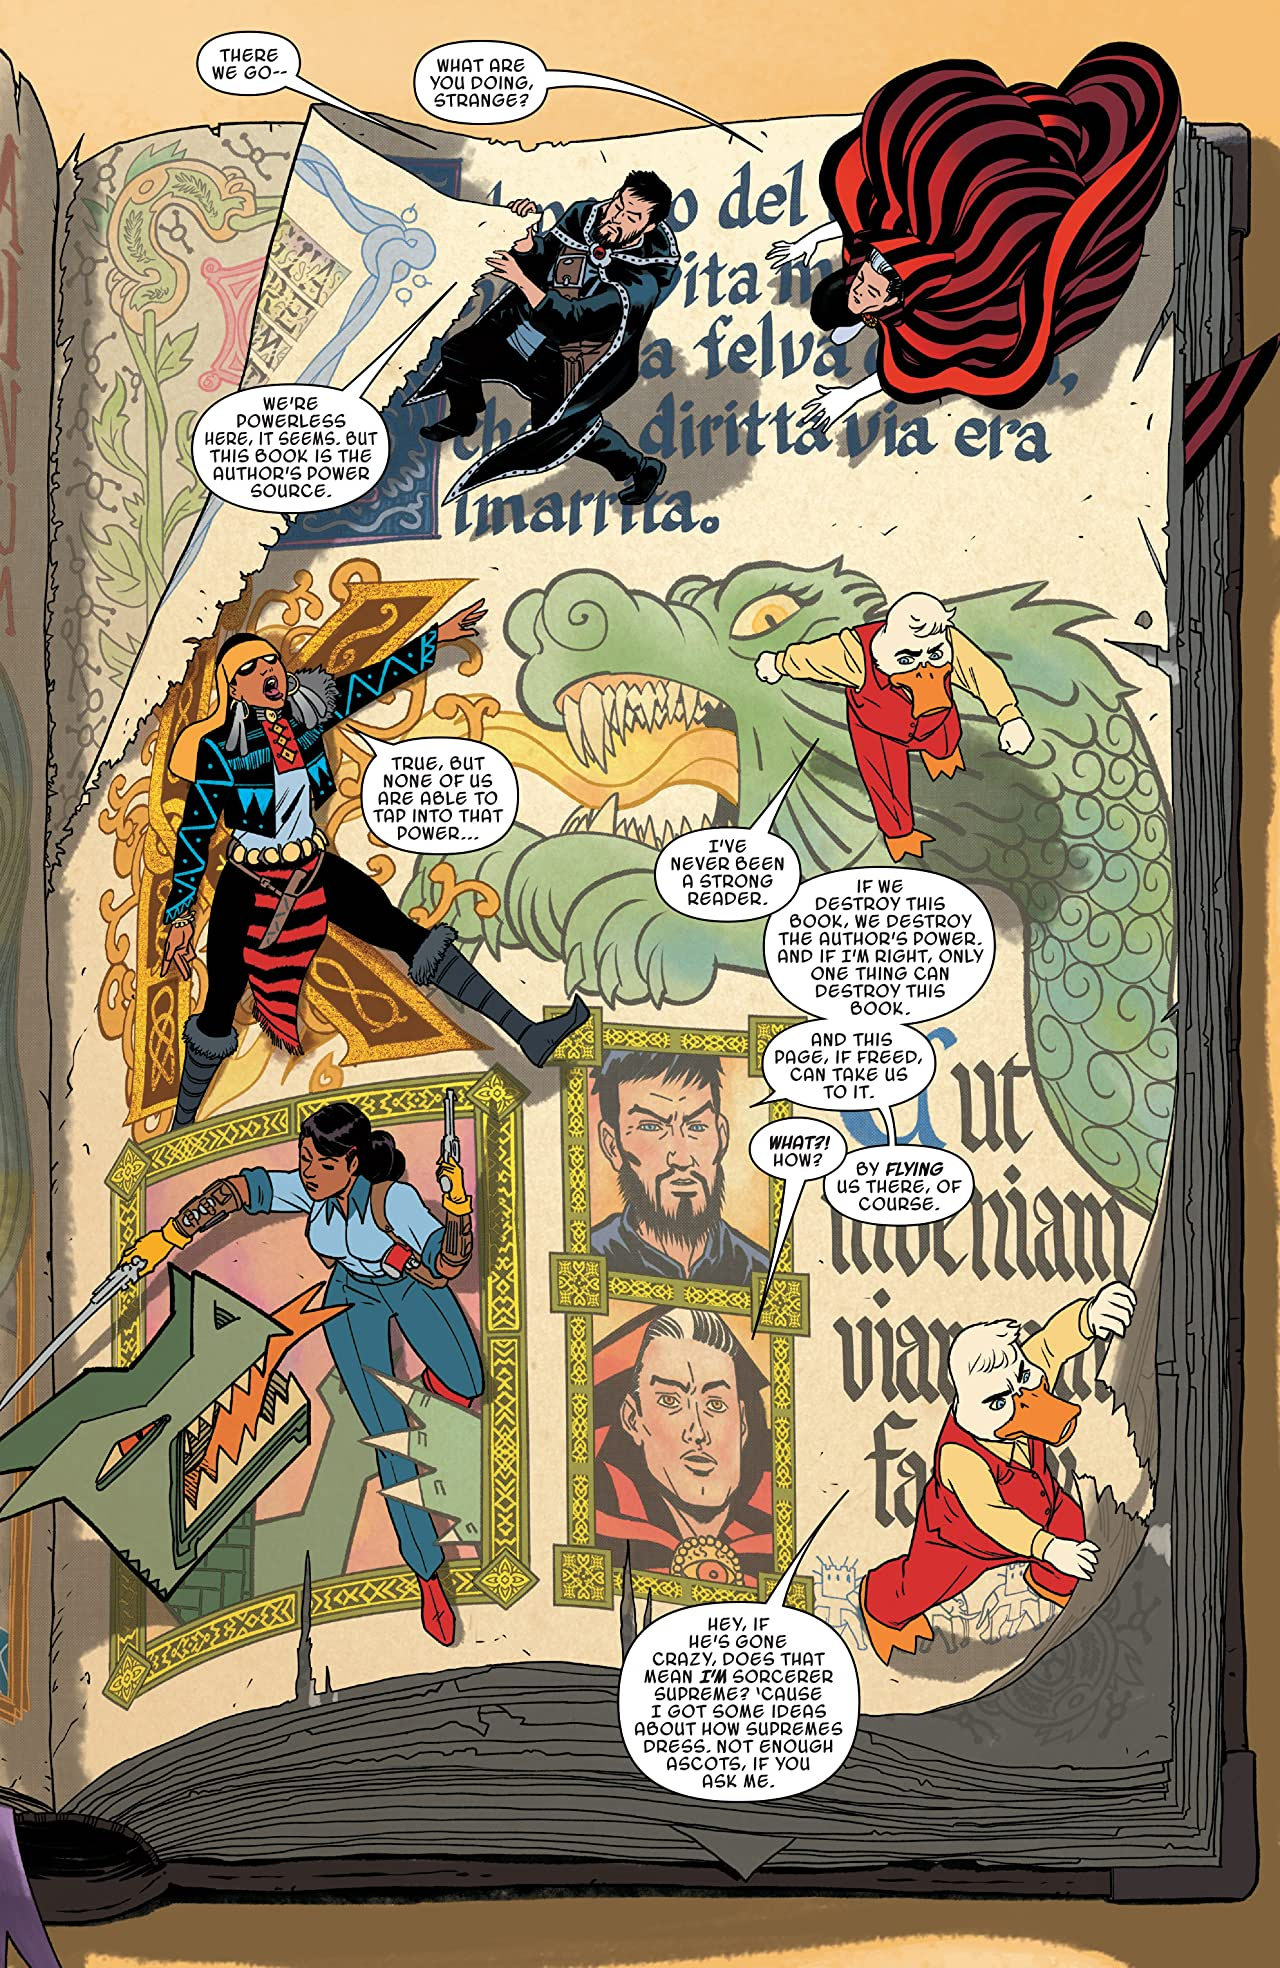 Doctor Strange and the Sorcerers Supreme (2016-2017) #9